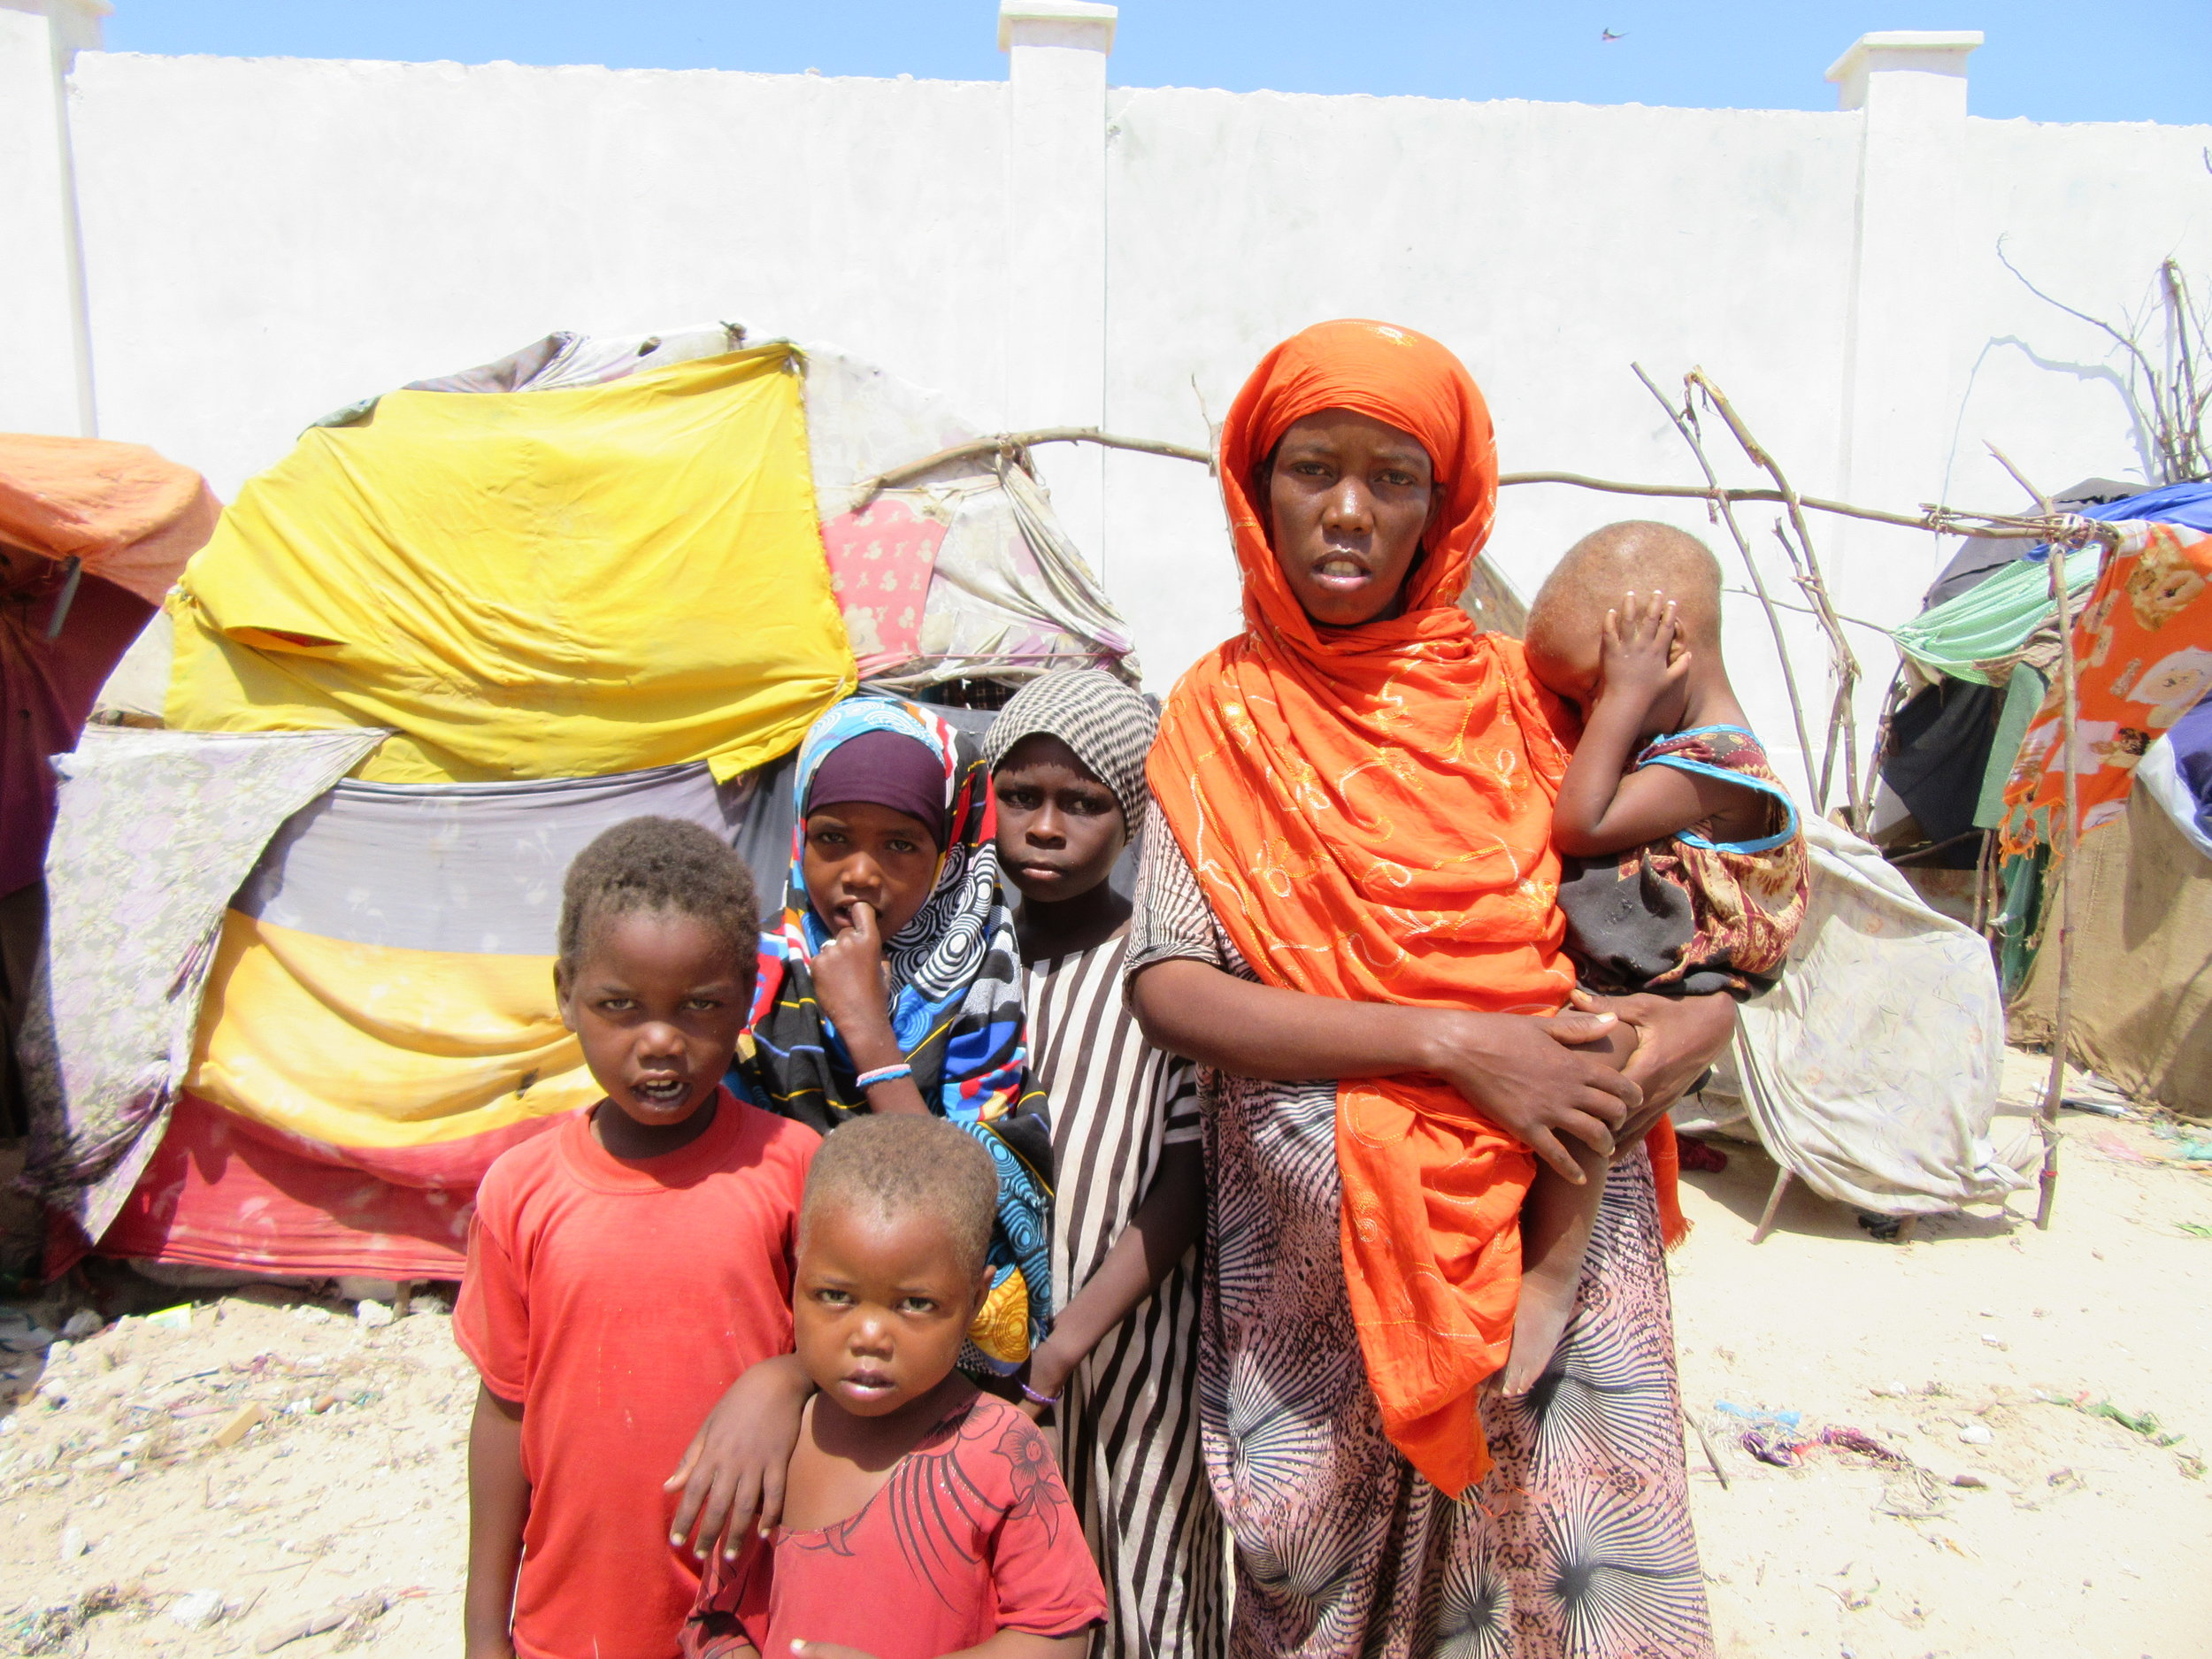 """Eight months pregnant, this young mother arrived in Mogadishu four days ago with her husband and four of her children having walked for 20 days to get here. """"First we had drought and our animals died. Then fighting broke out in the village forcing us to flee in all directions. I lost three of my children in the fighting."""" She and her family are now living in this camp for internally displaced persons (IDPs) where they don't yet even have any shelter to sleep under."""